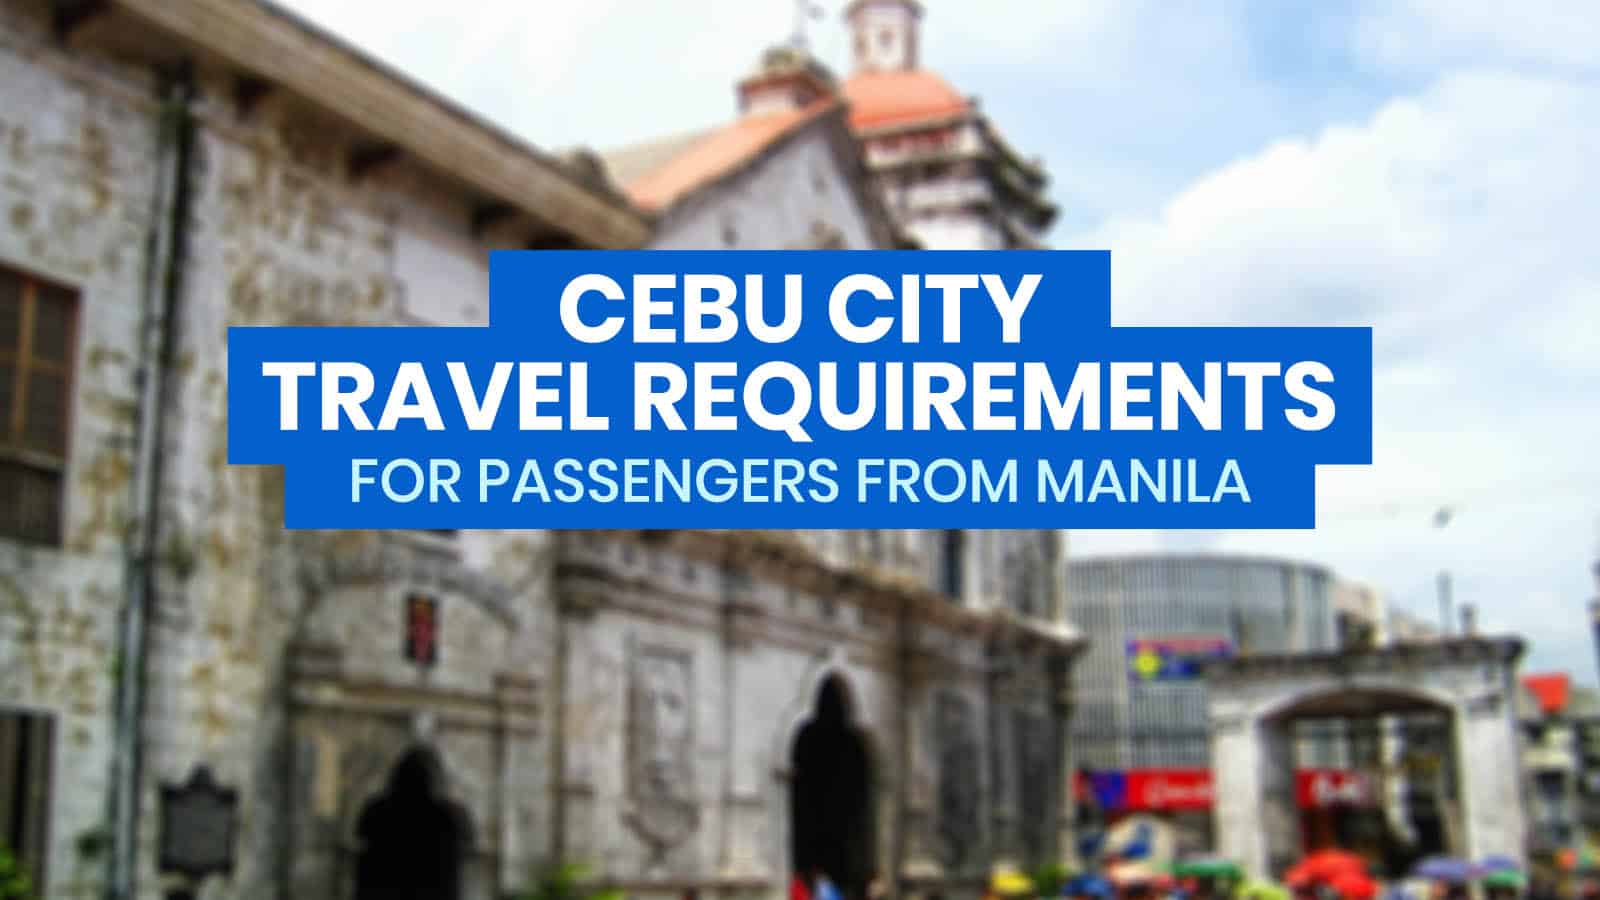 NEW CEBU CITY TRAVEL REQUIREMENTS: For Passengers from Manila